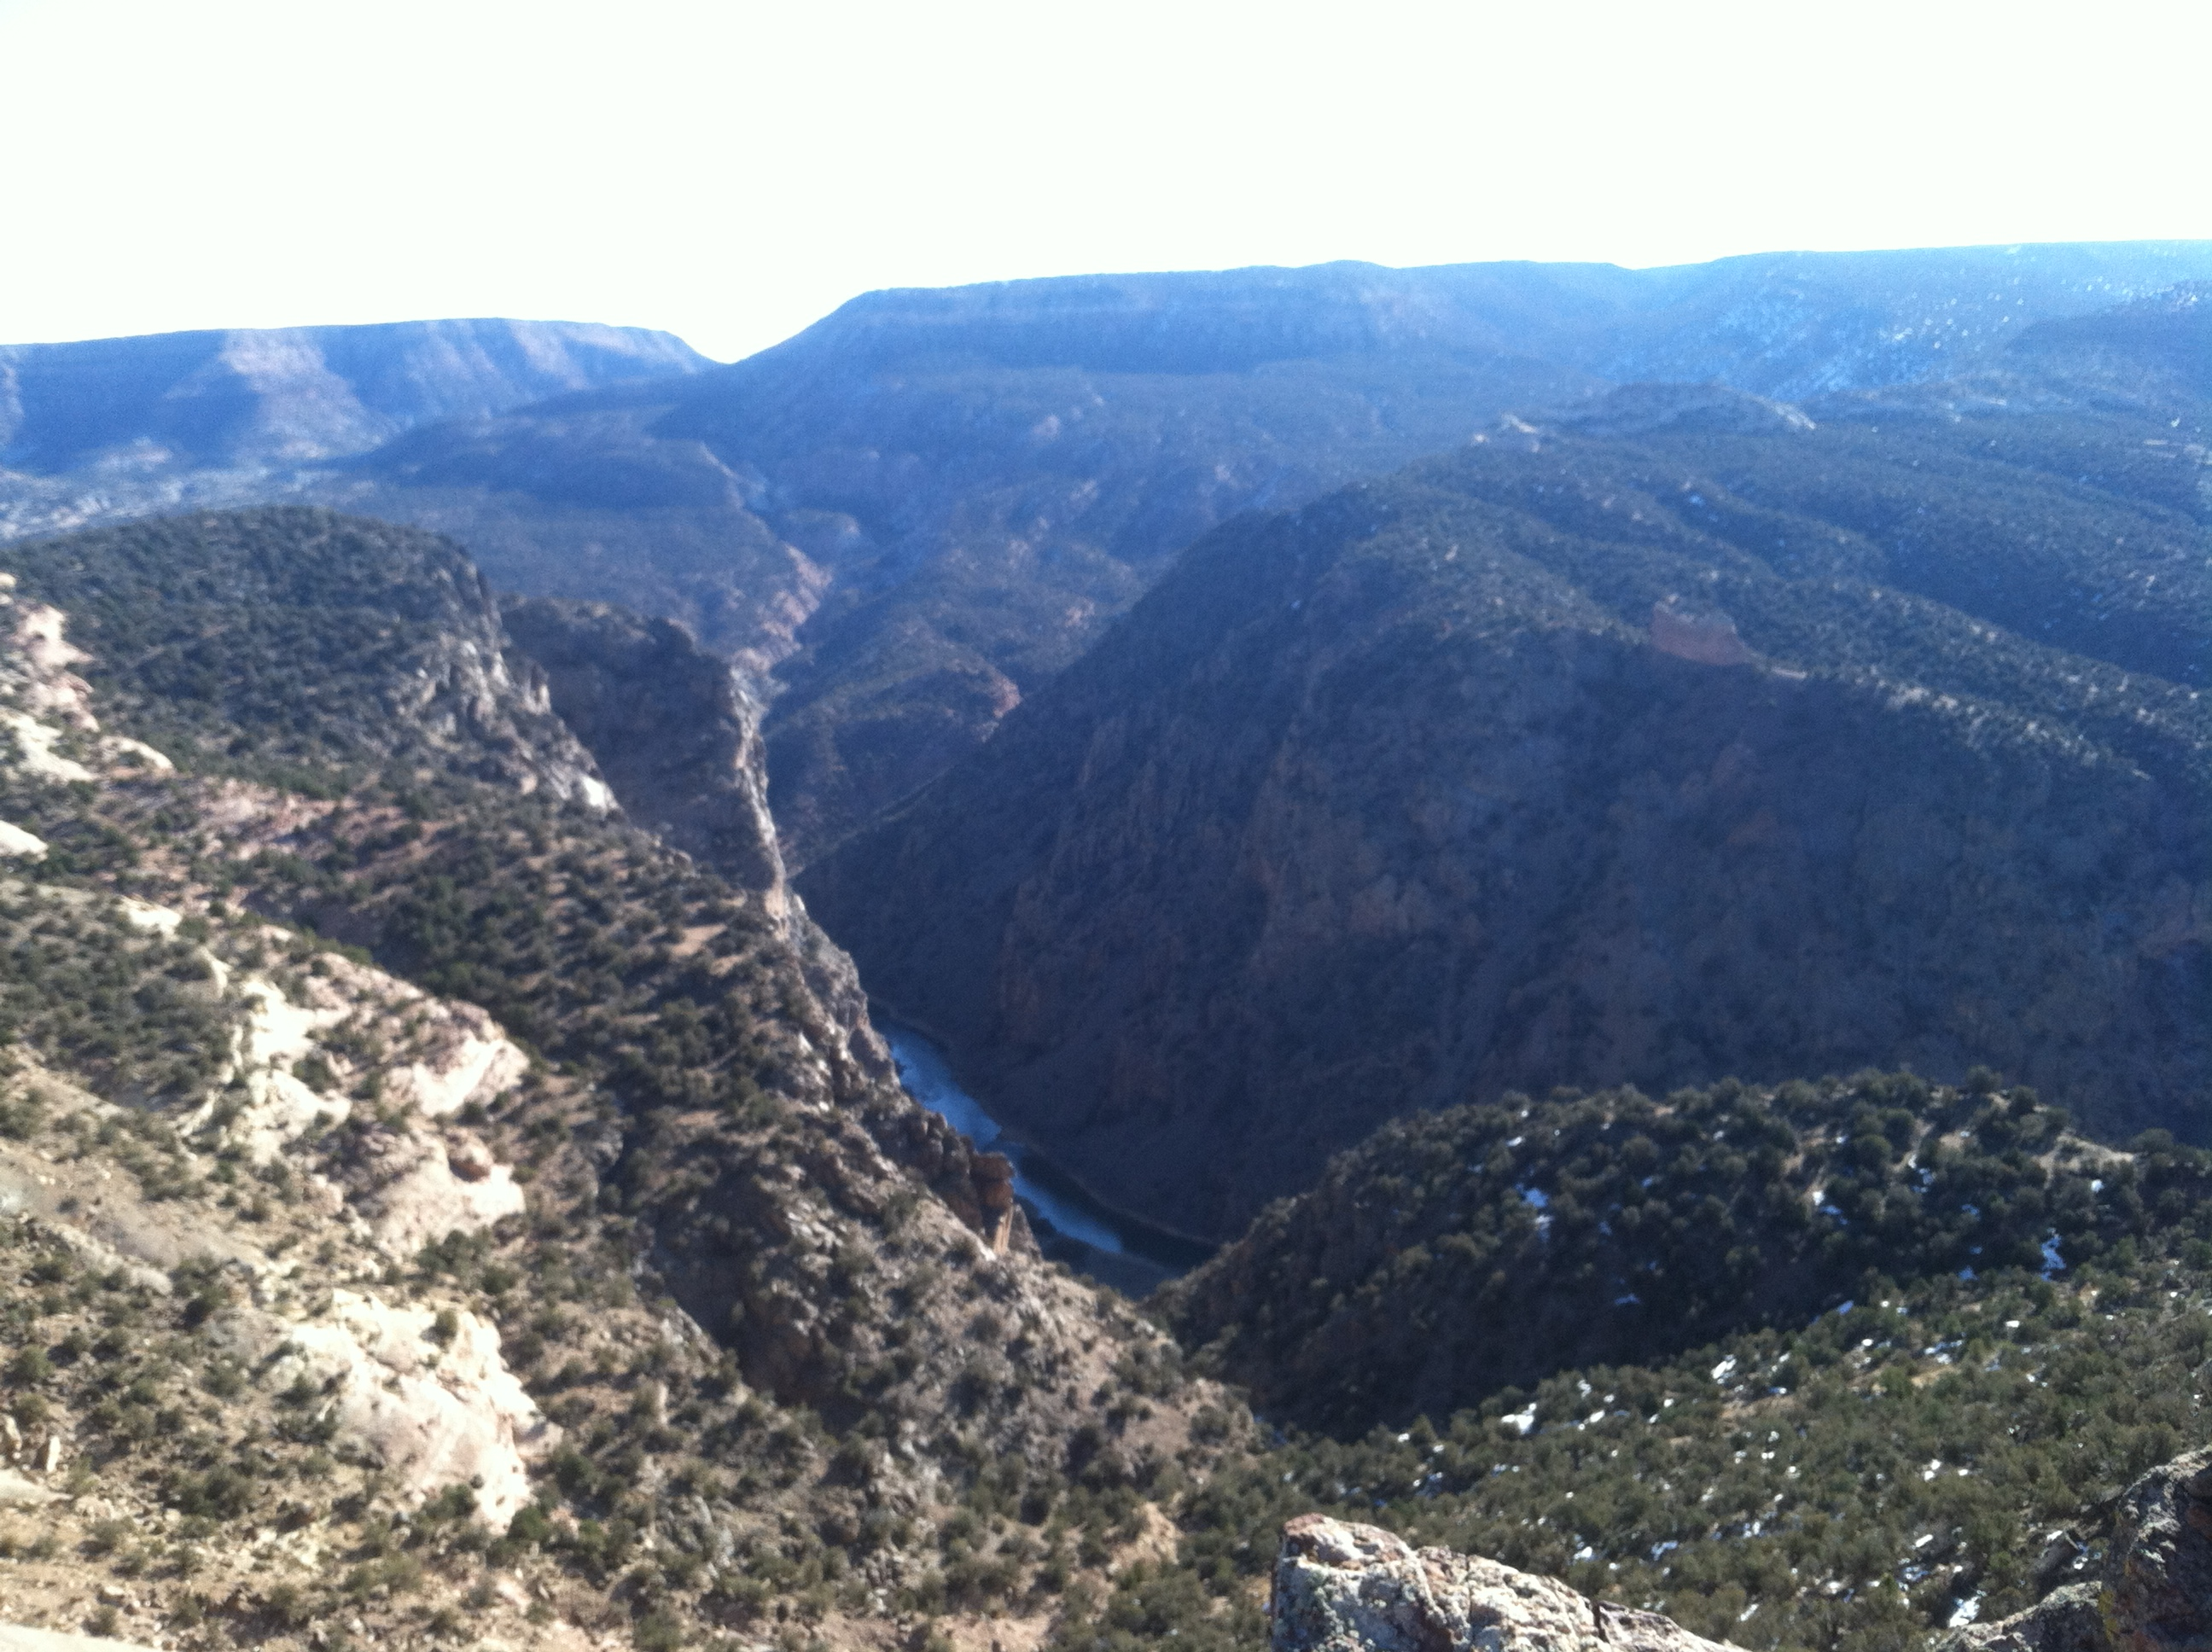 Looking down into the Gunnison